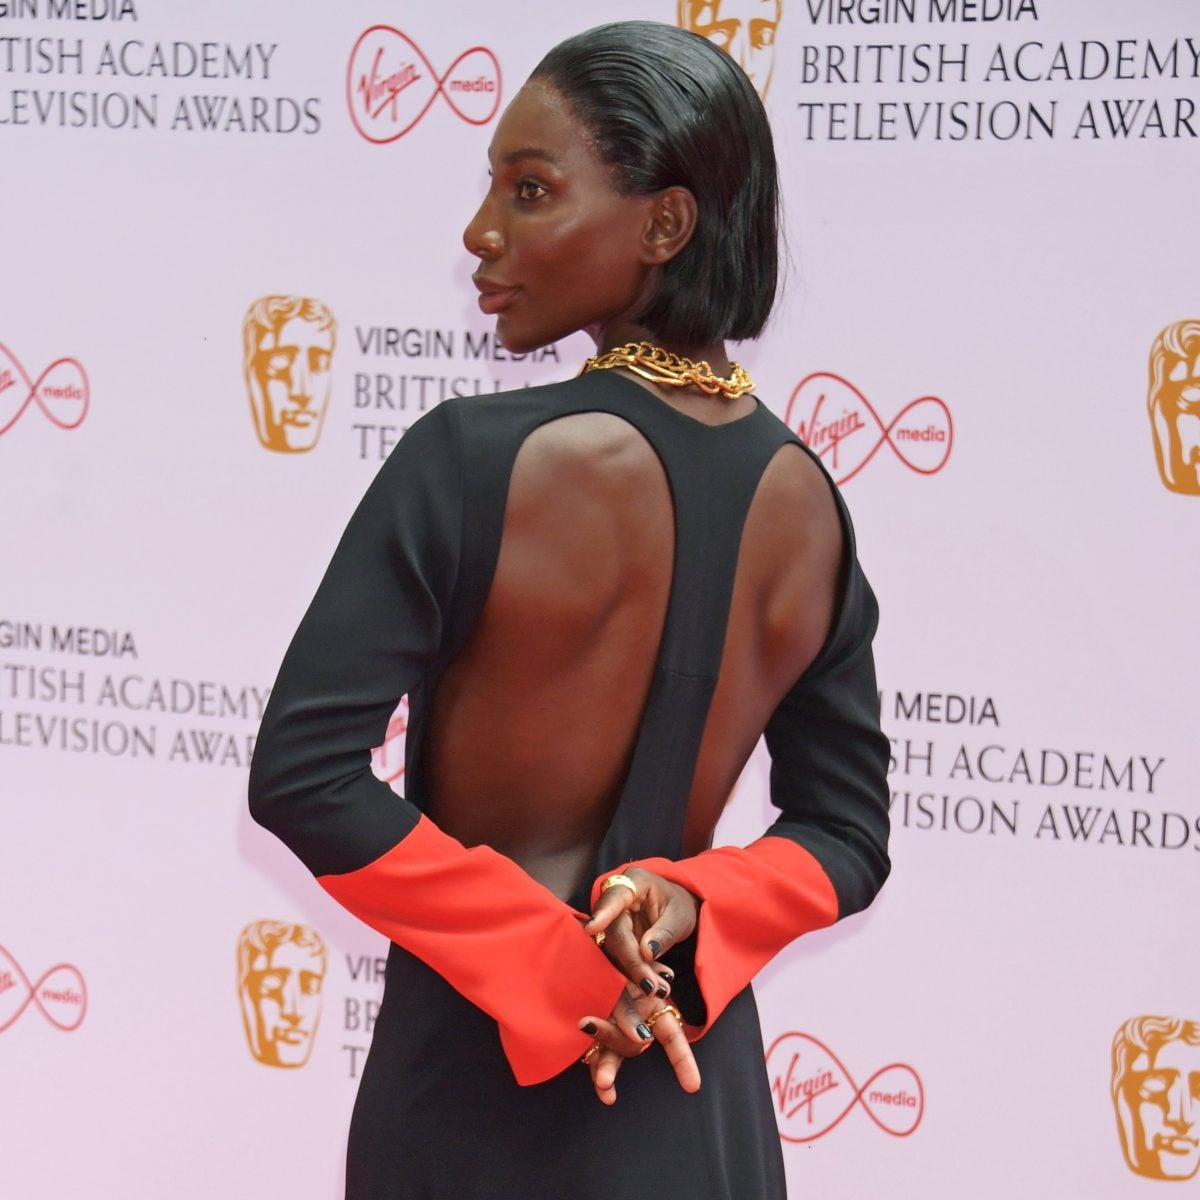 17 Black British Stars Who Were Absolute Stunners At The BAFTA TV Awards